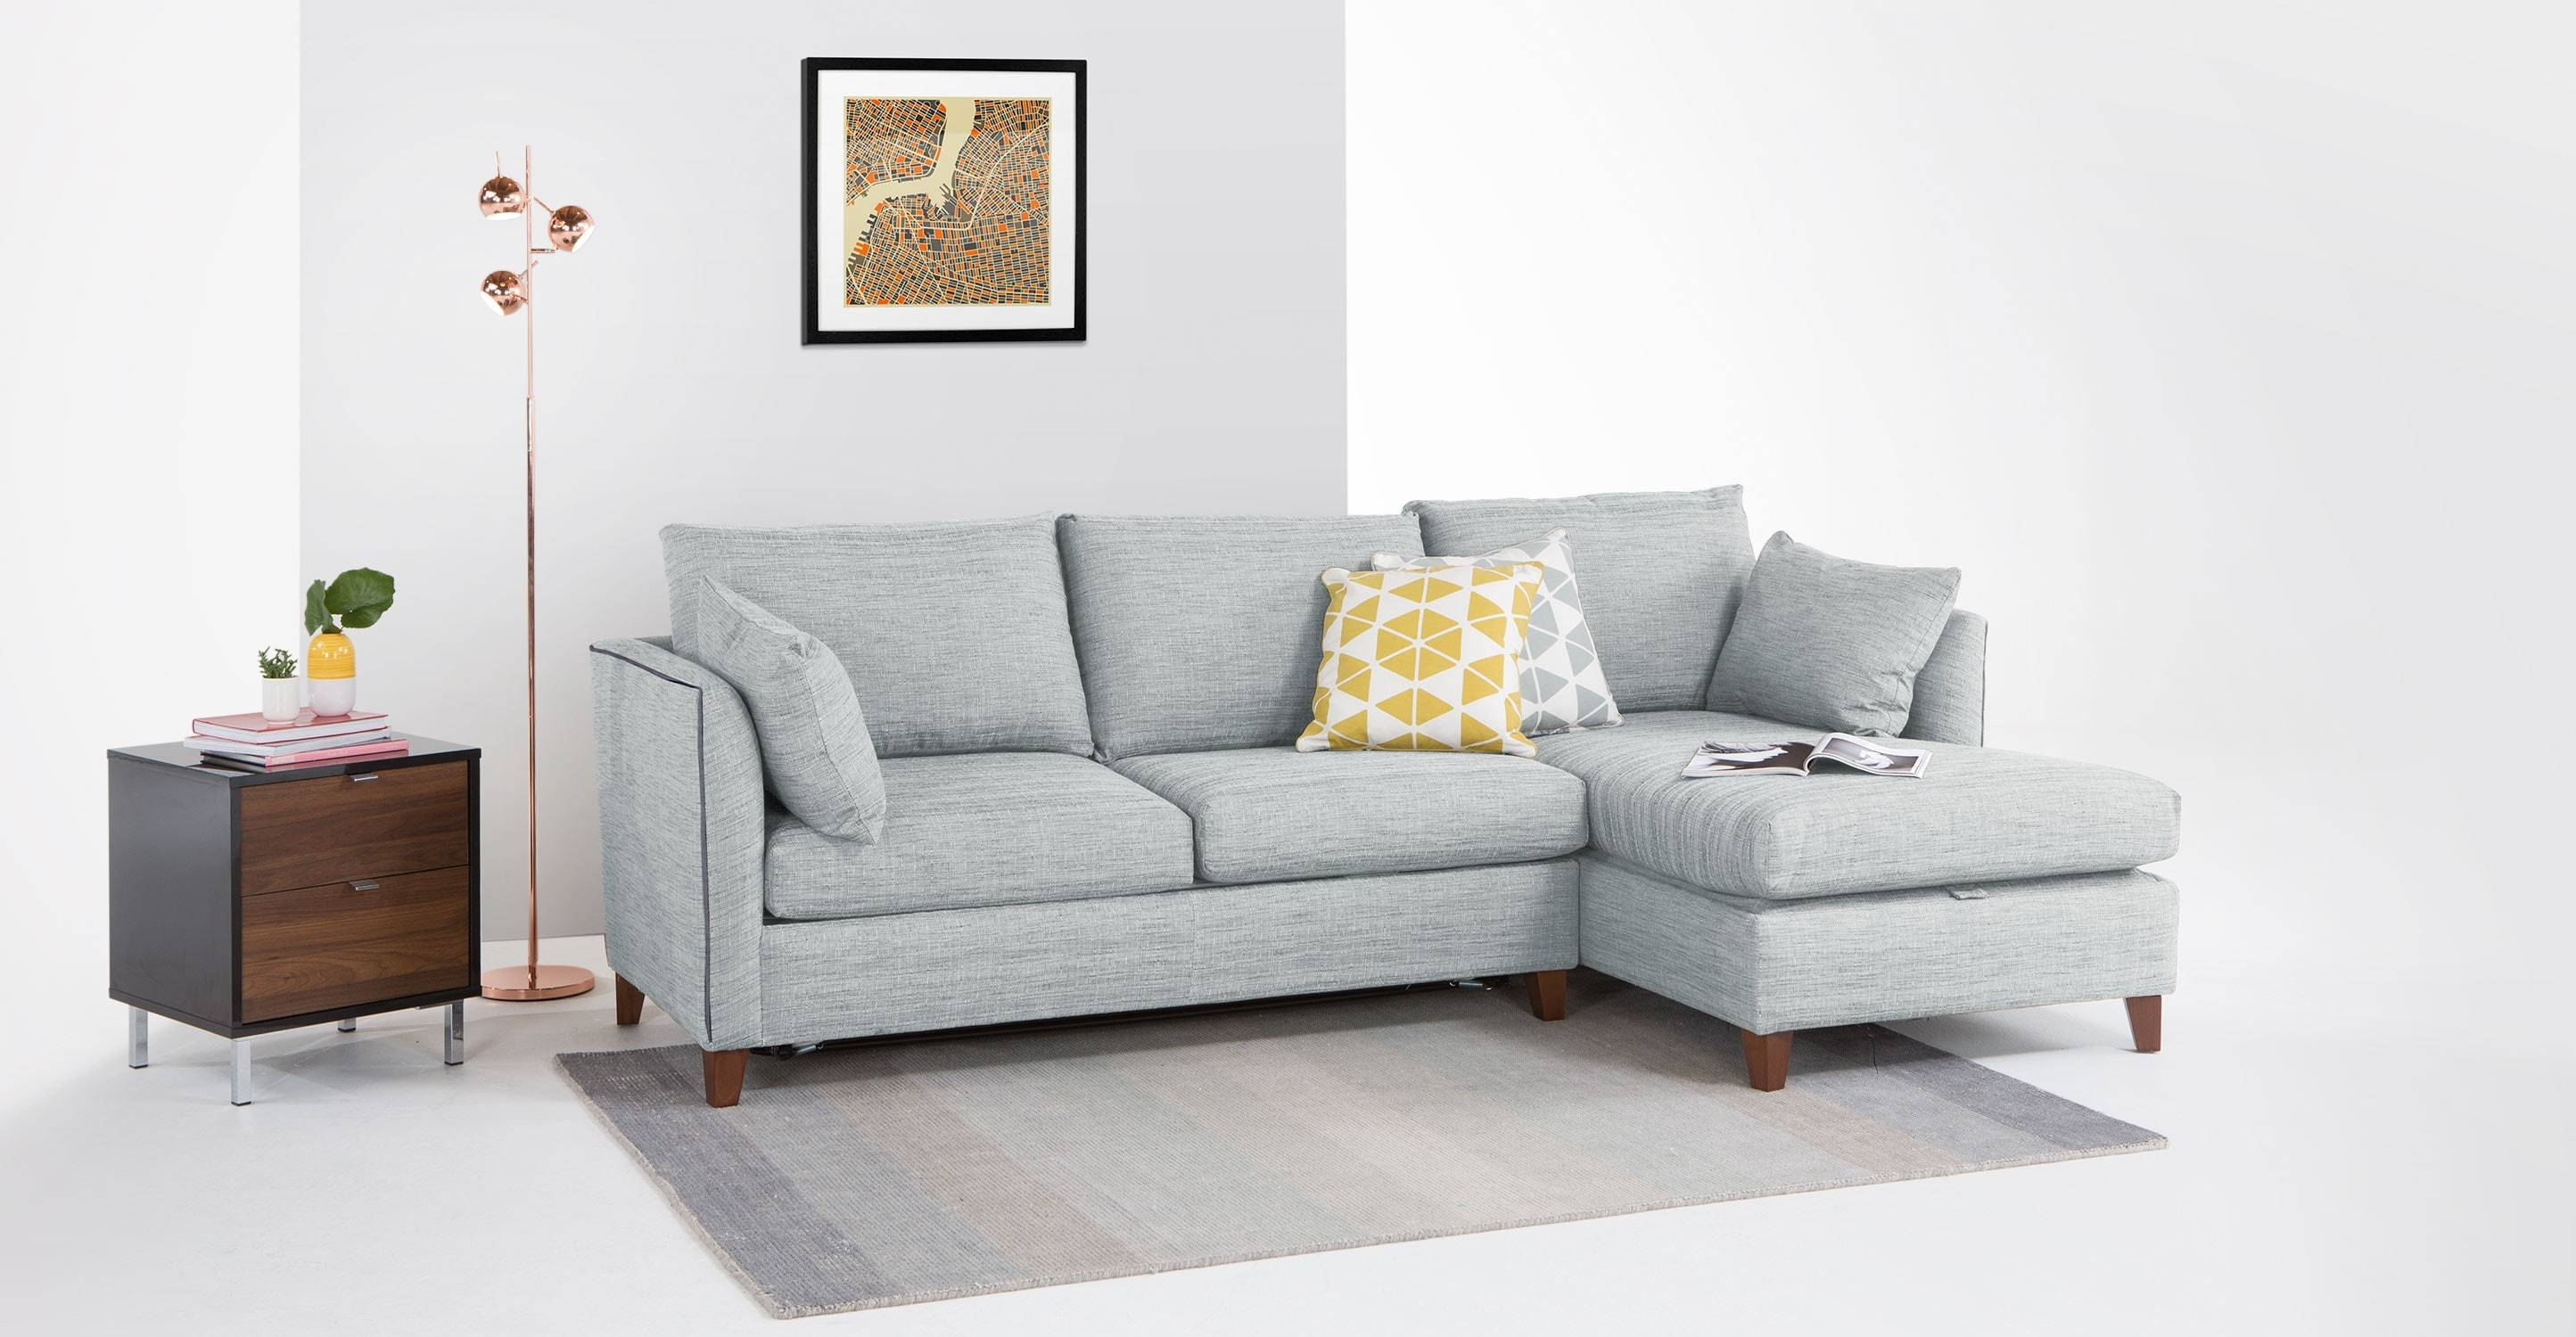 Corner Sofa Bed With Storage London | Centerfieldbar with regard to Blue Grey Sofas (Image 4 of 15)